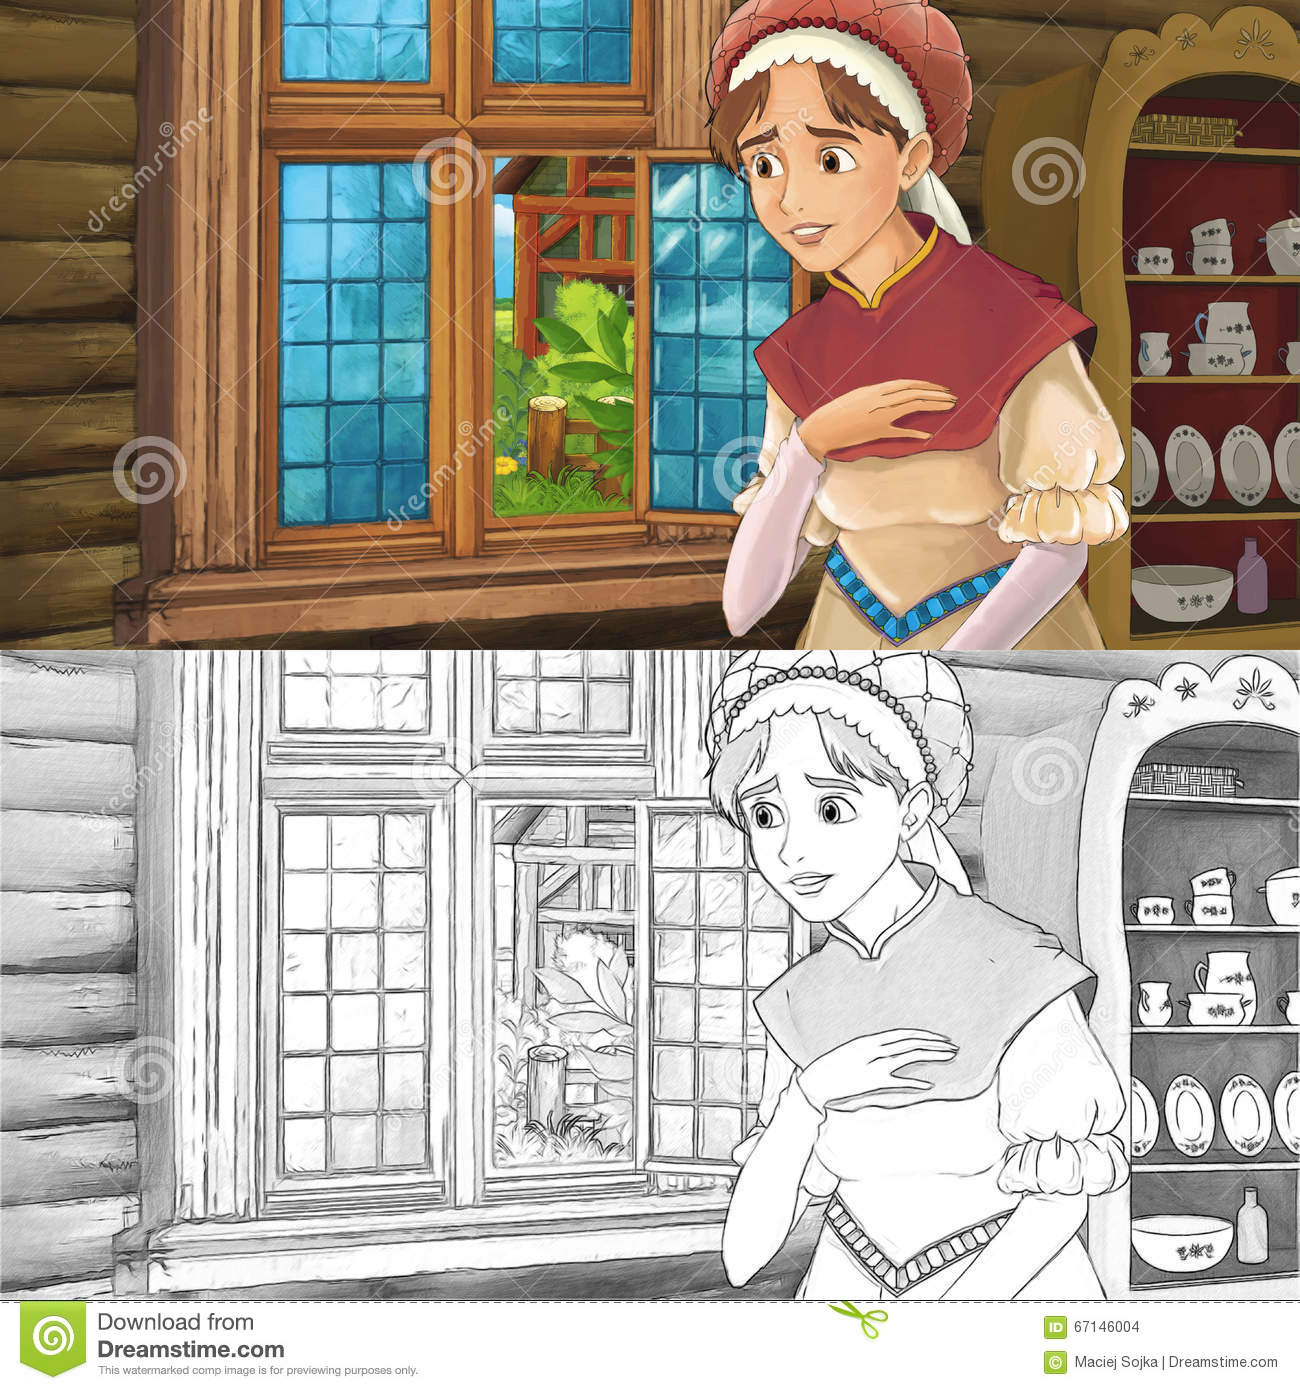 Cartoon Medieval Scene Of A Woman In The Kitchen - With Coloring ...